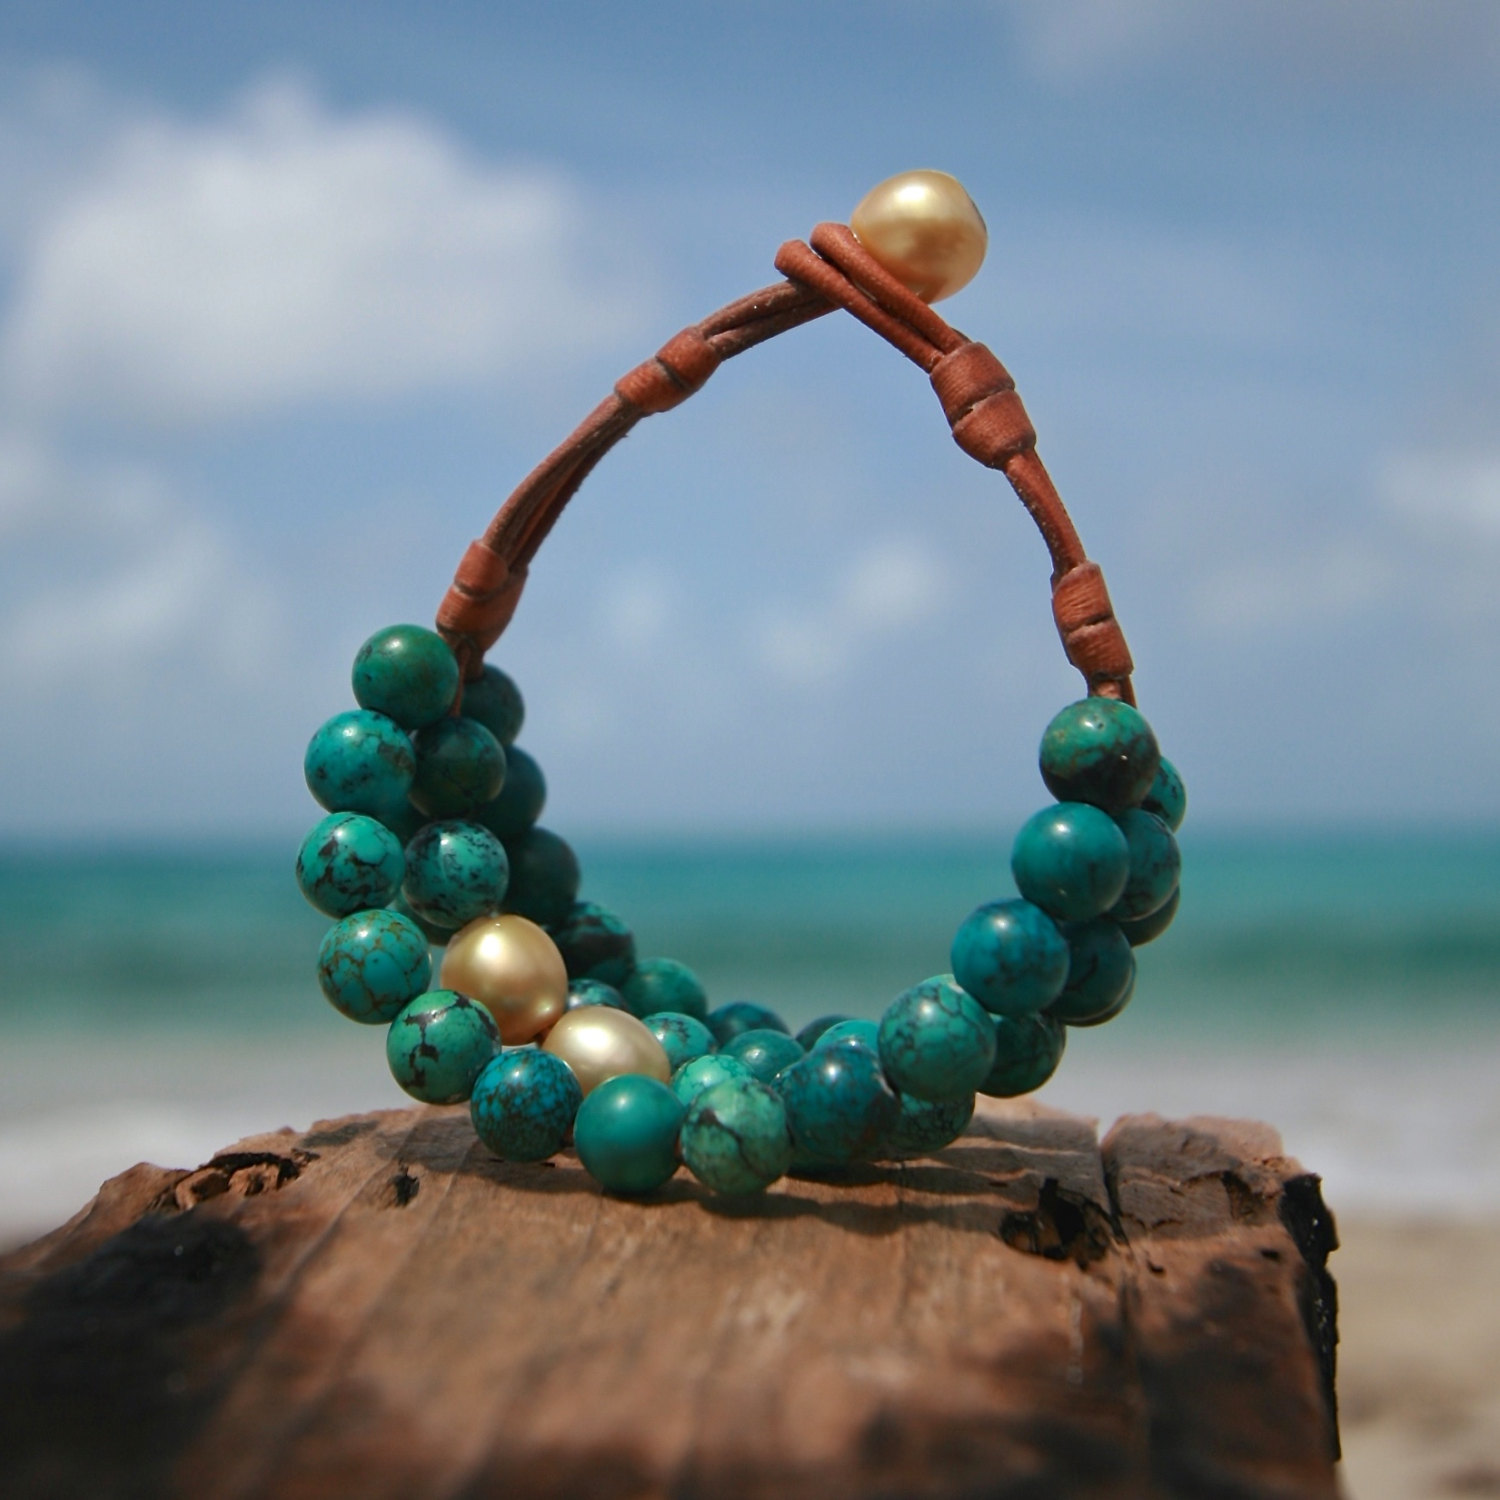 Multiple turquoise strands bracelet with cultured gold pearls, St Barts island, St Barthelemy, organic and mineral jewelry, bohochic, beach.